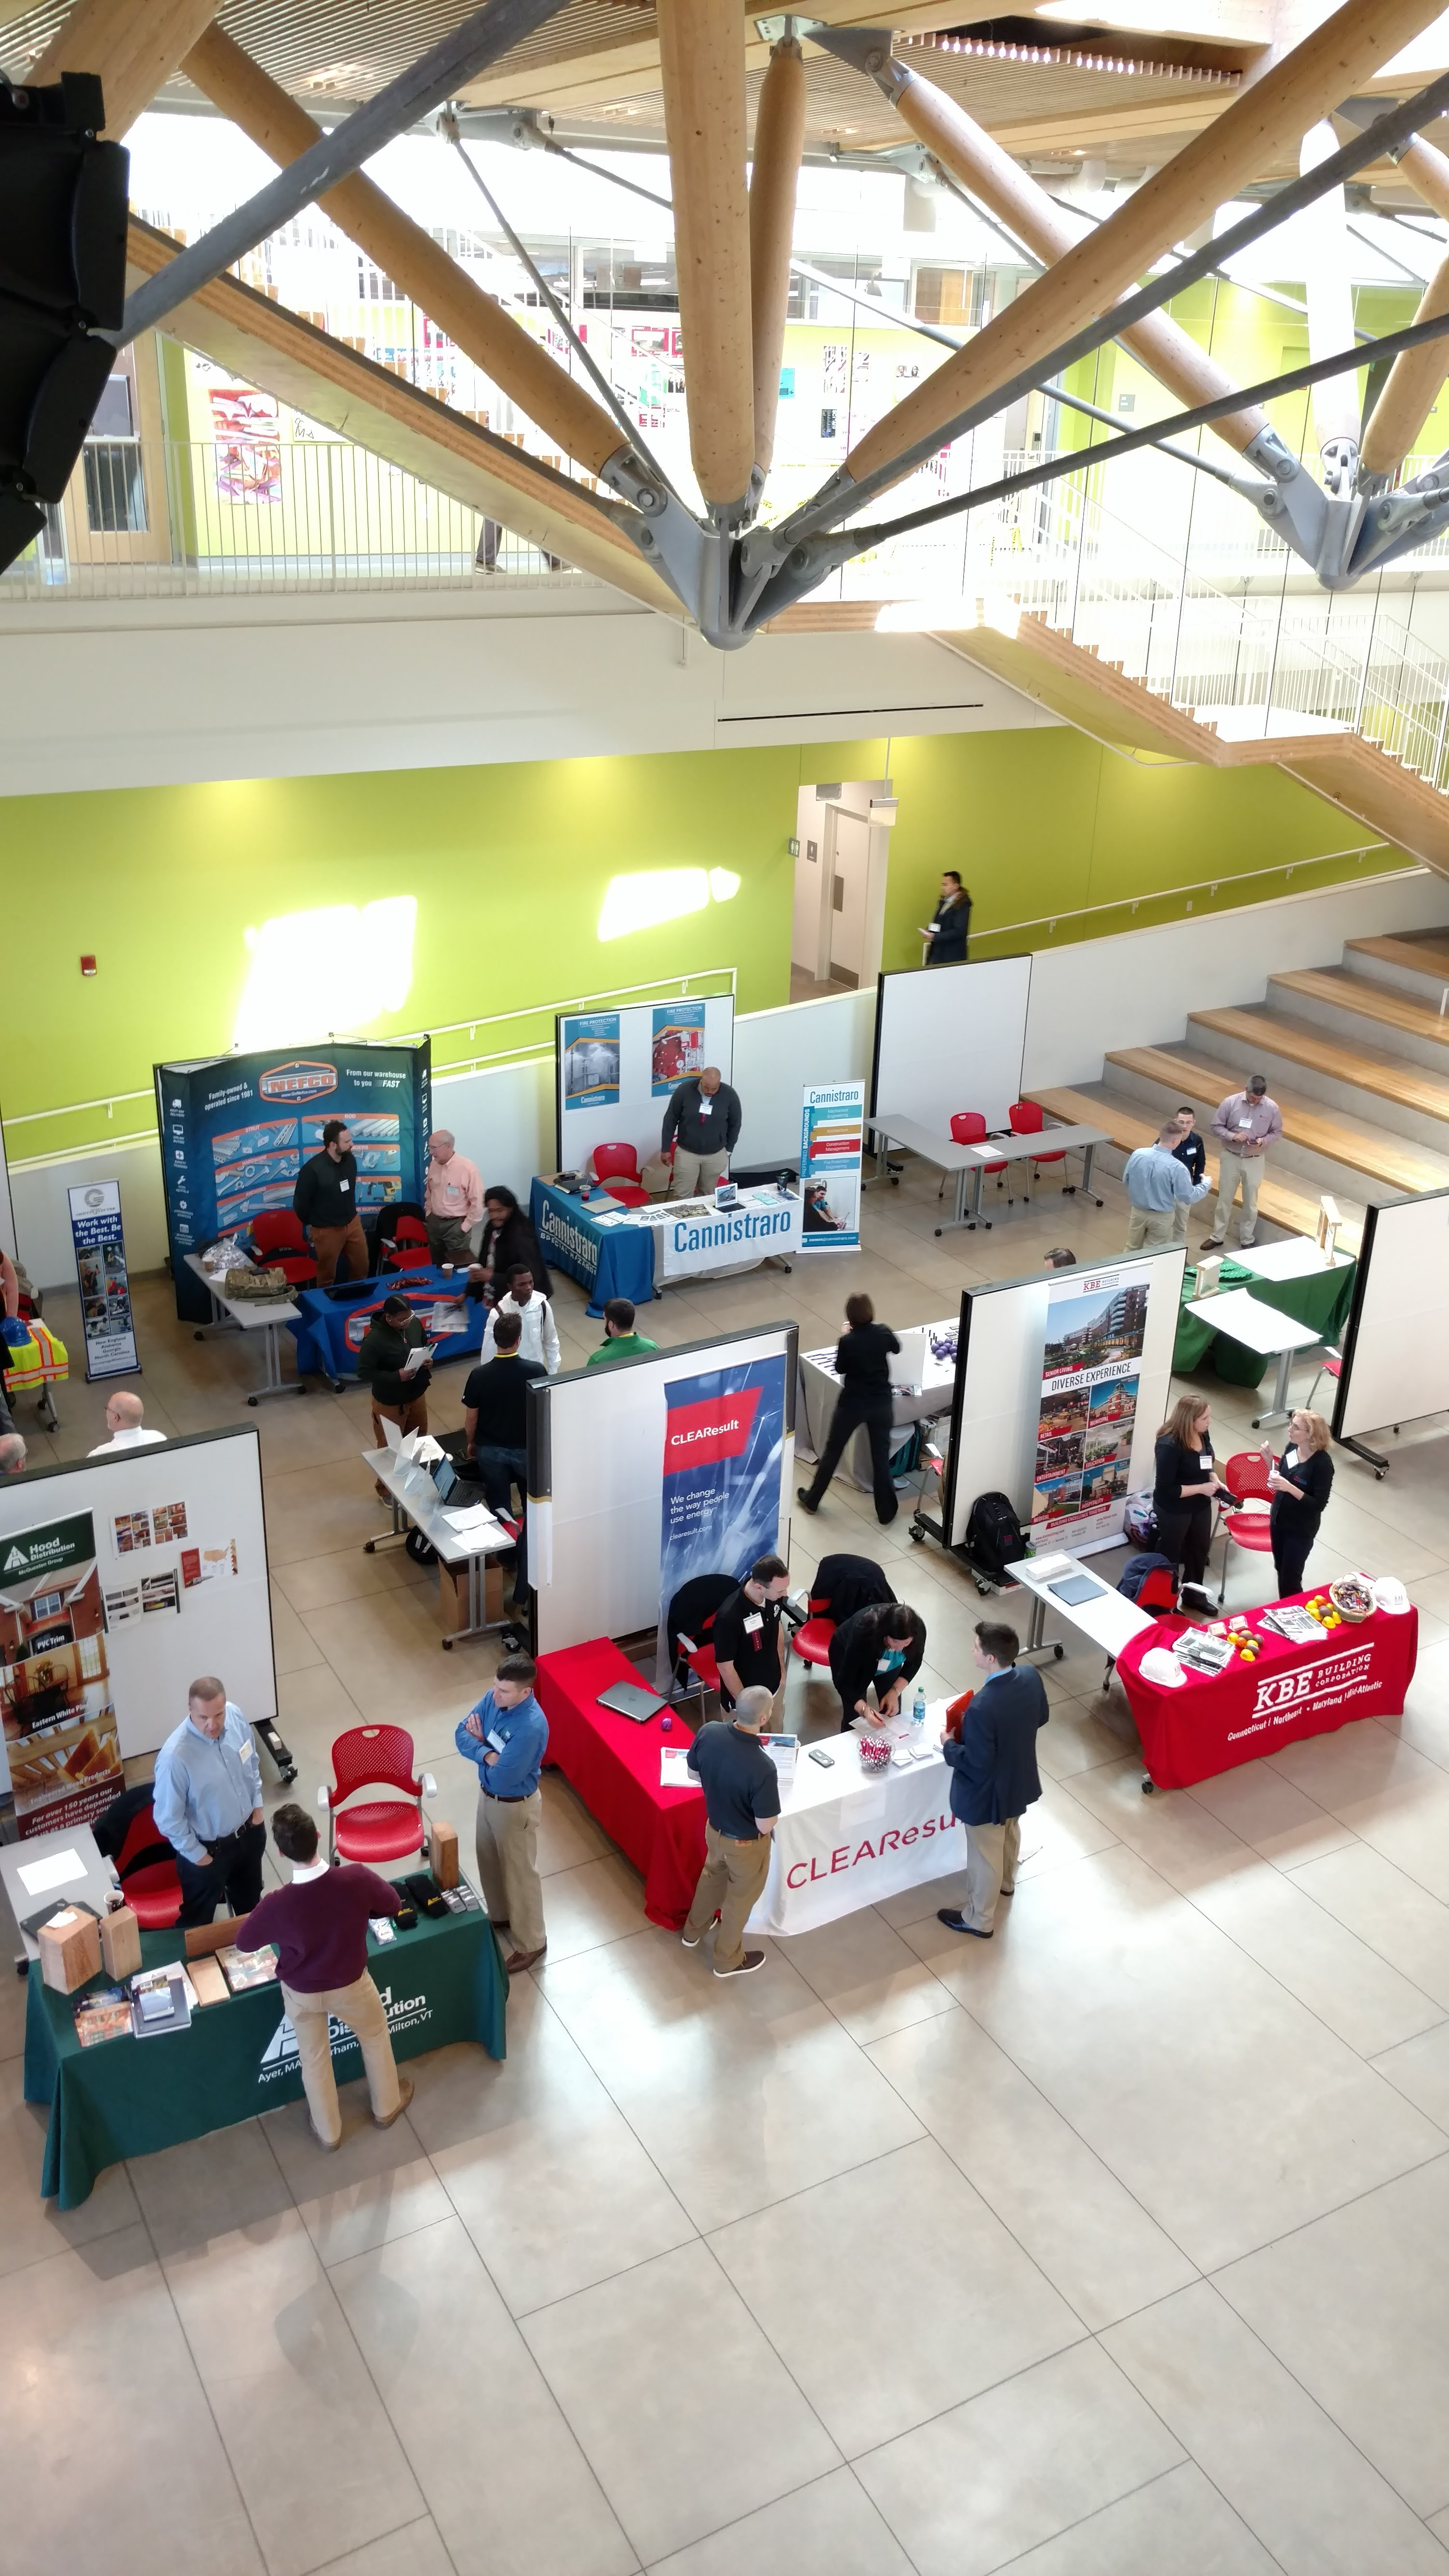 Bct Career Fairs Building And Construction Technology Umass Amherst